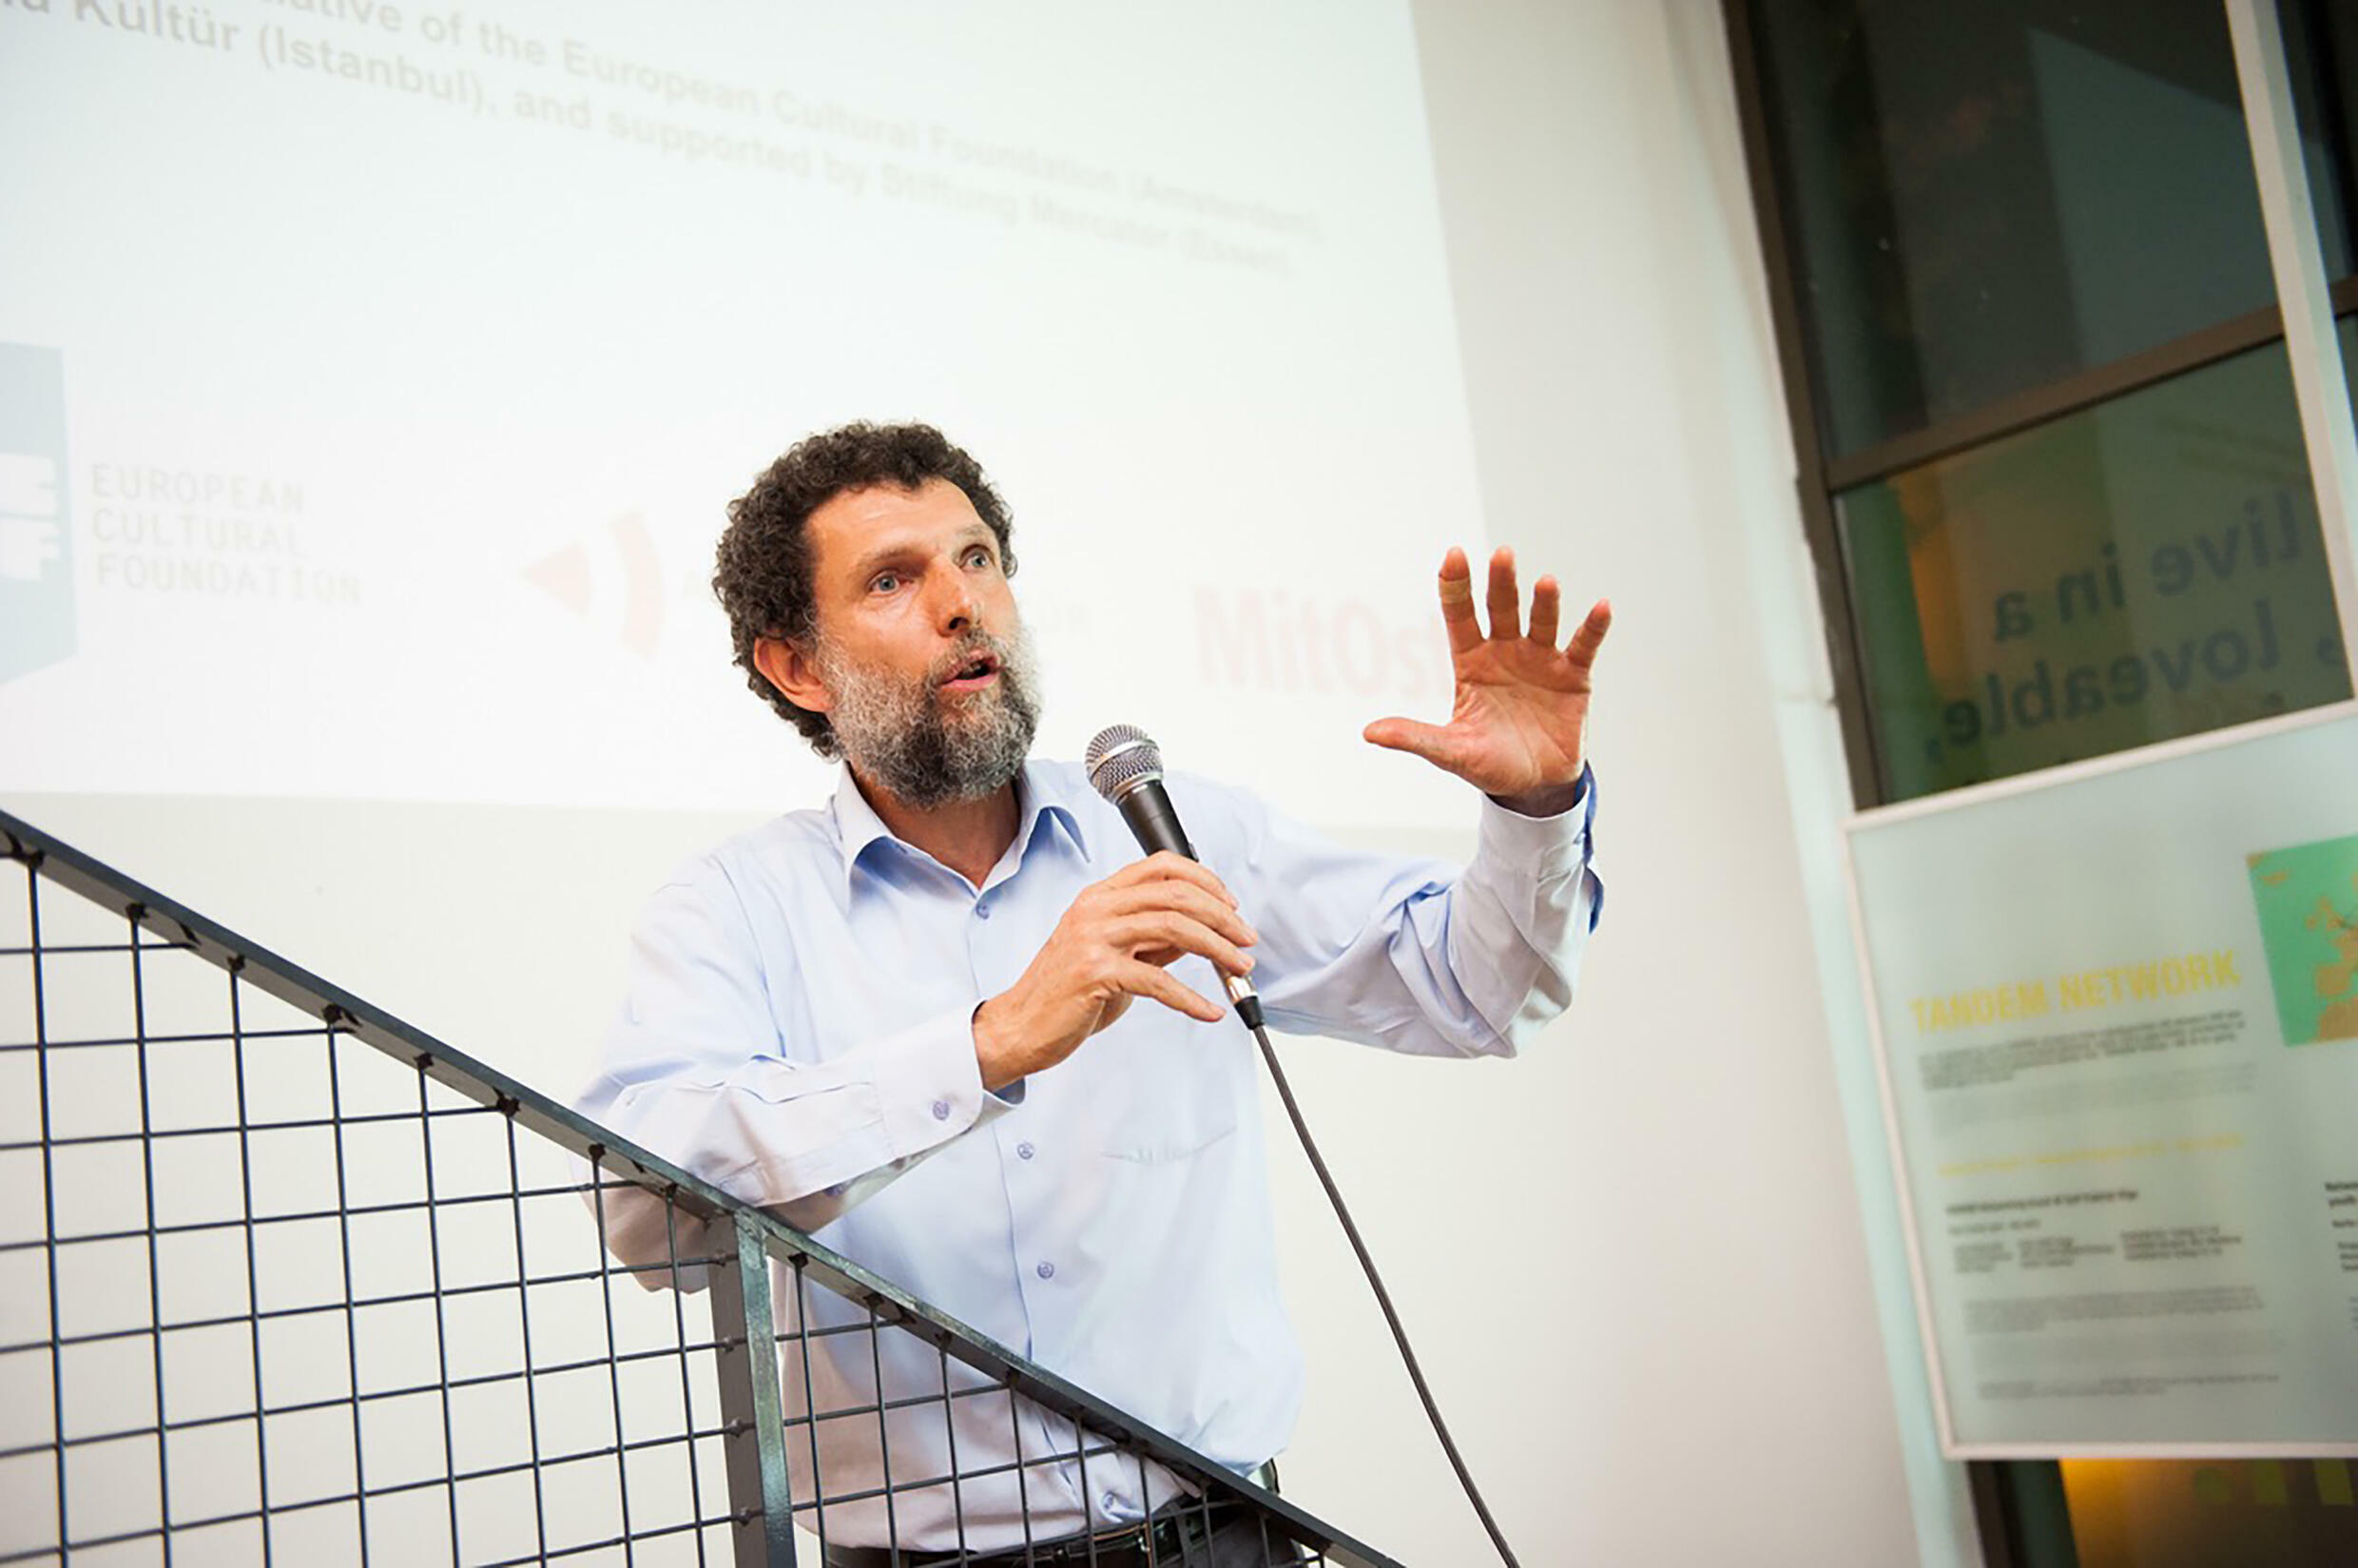 Philanthropist Osman Kavala says he does not expect to walk free any time soon